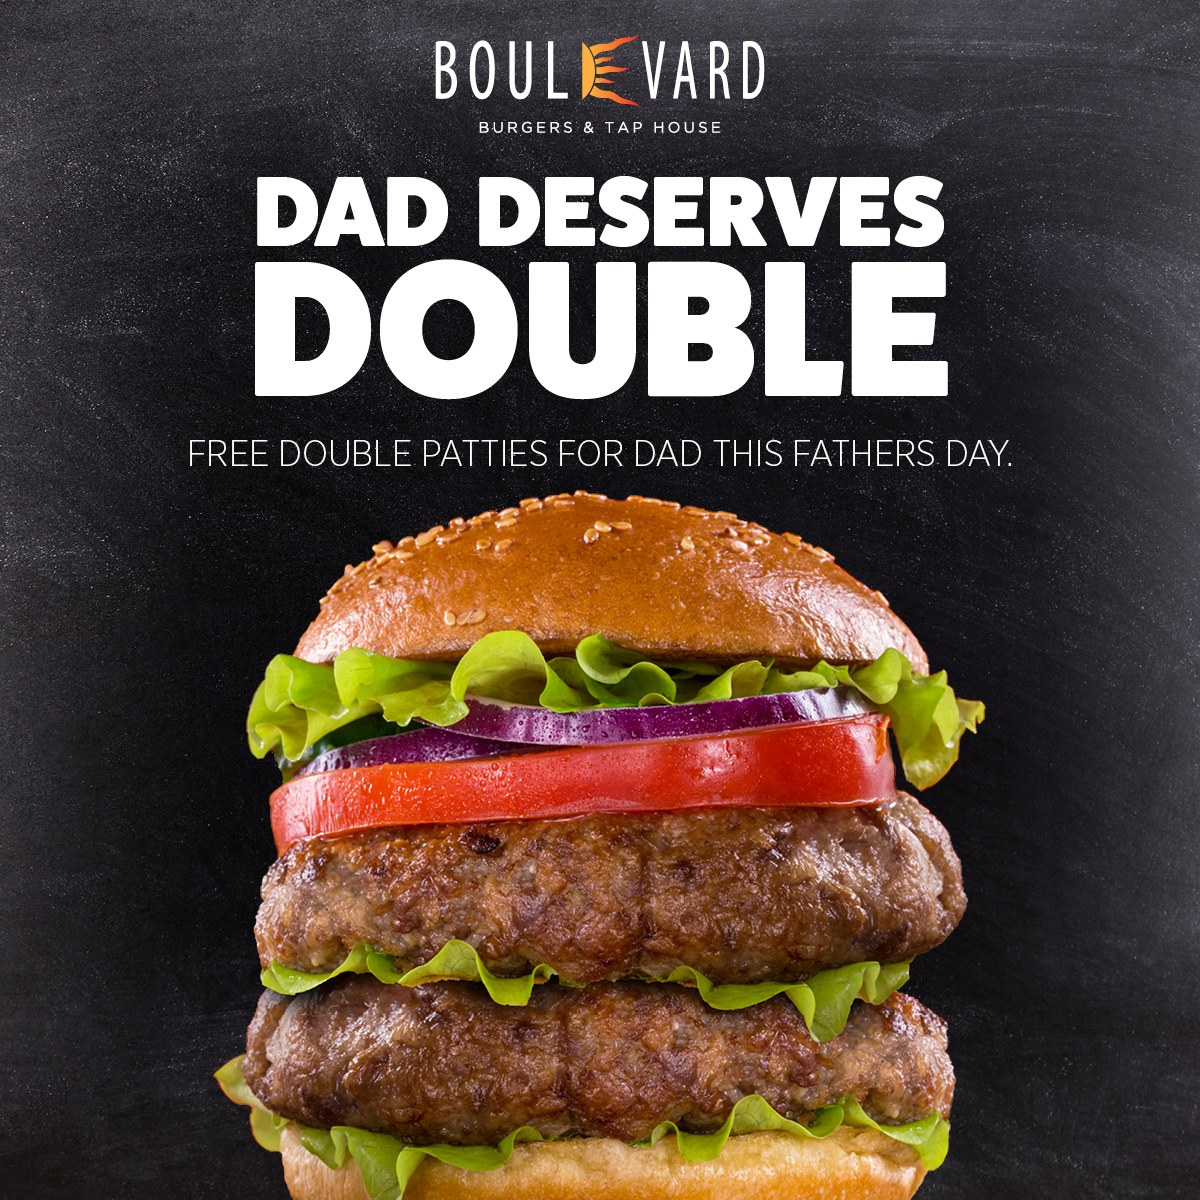 Father's Day at Boulevard Burgers